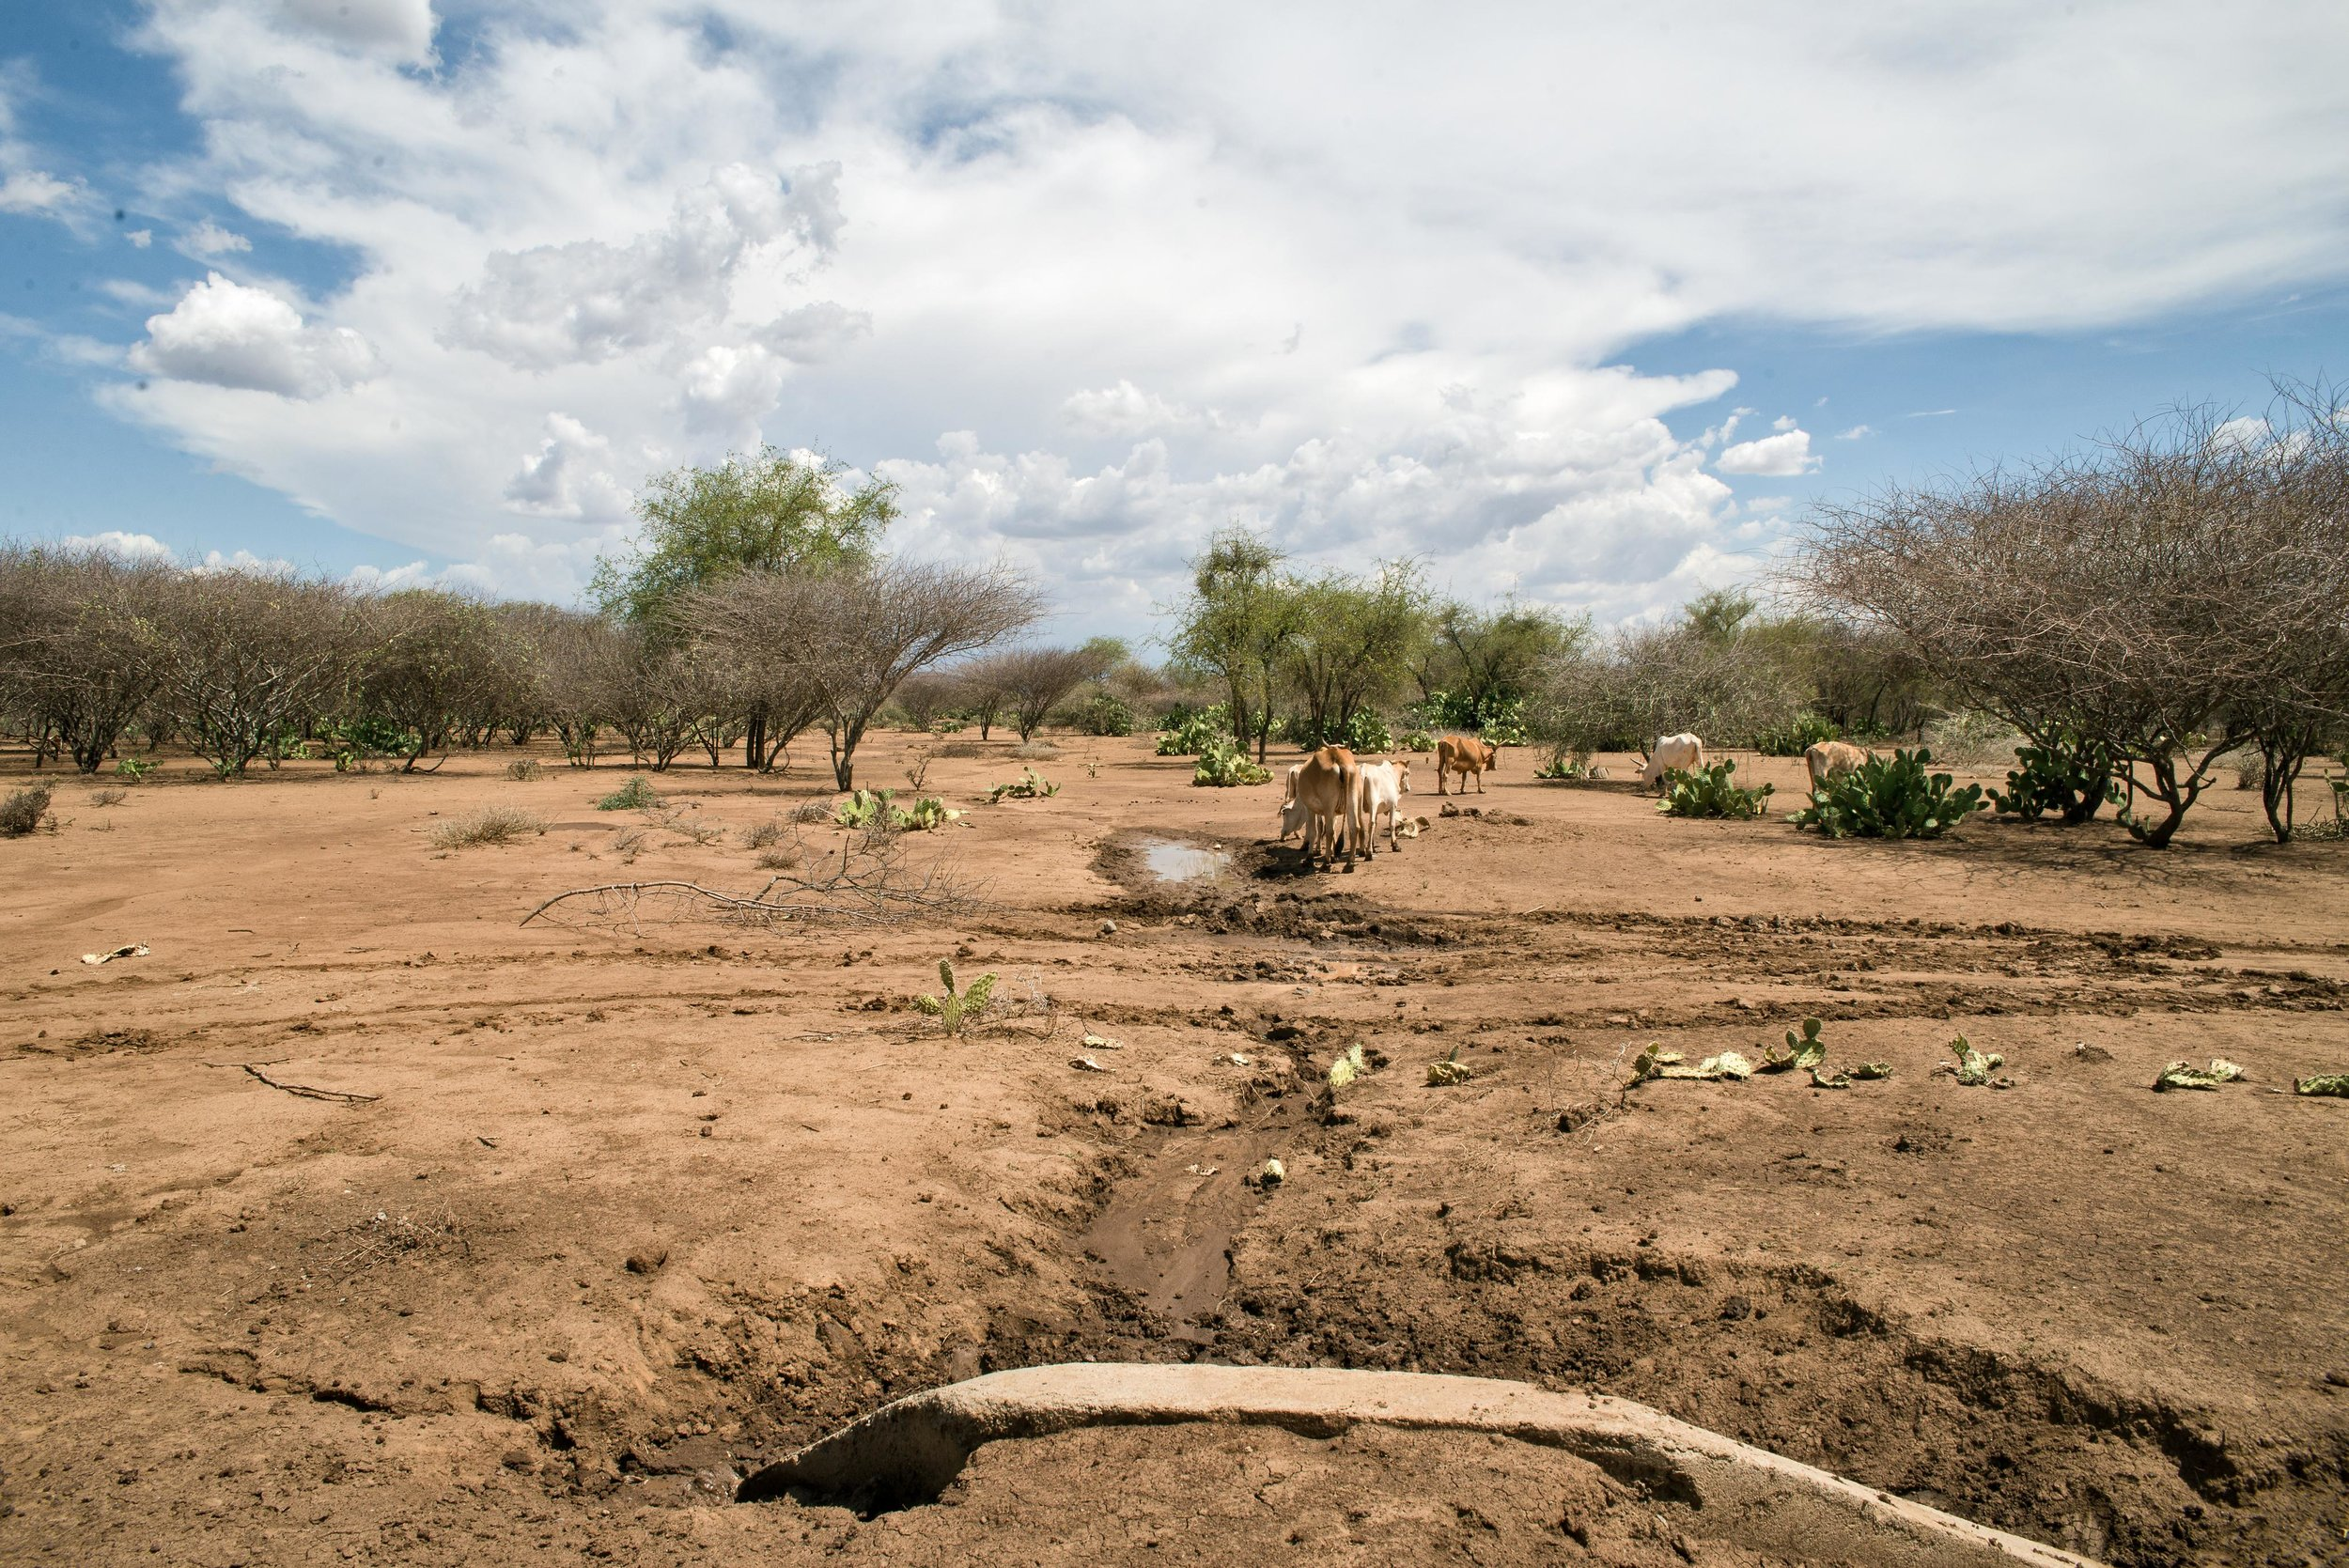 """Cows graze on barren land in Baringo County, Kenya. The only thing that grows here are clusters of blooming cactus """"and even those are getting dry,"""" said Samuel Mwaura with Childcare Worldwide. """"That's when you know the situation is out of hand."""""""